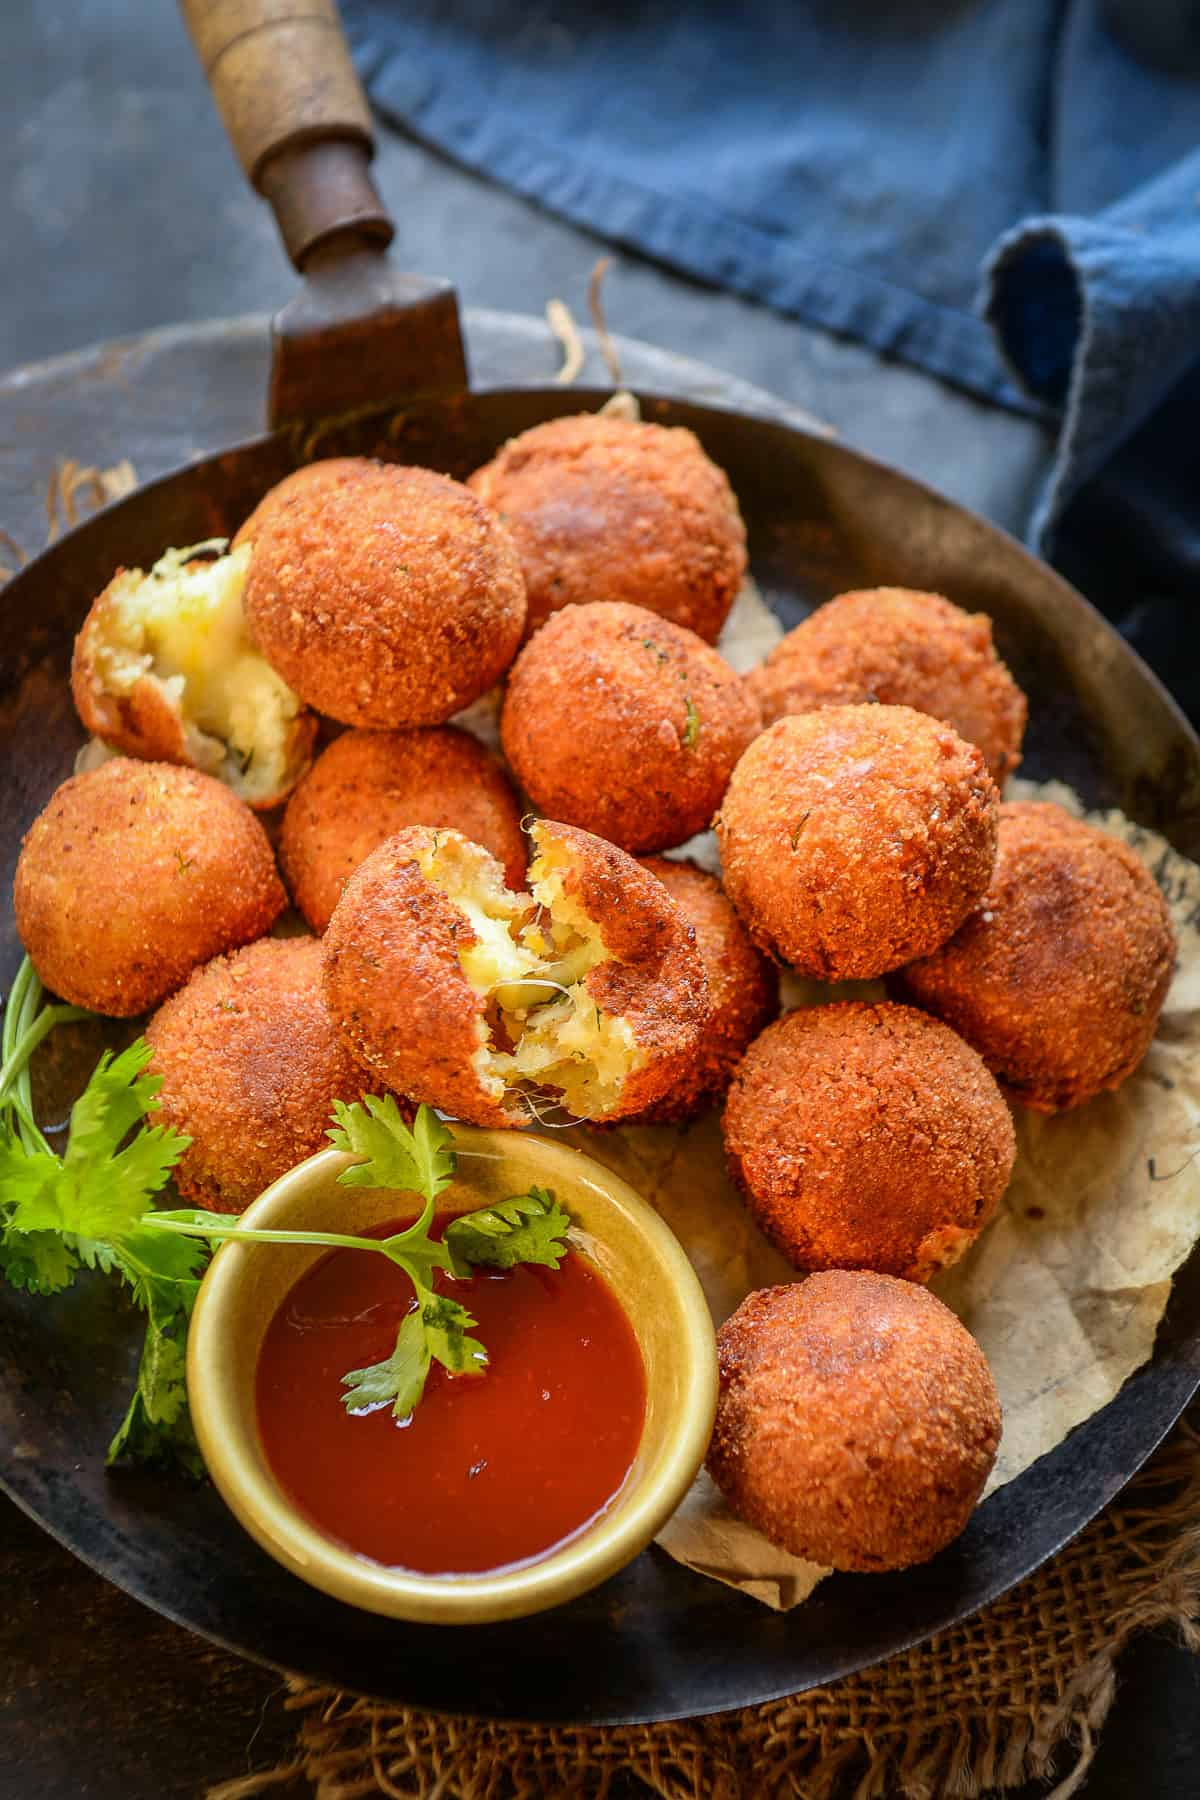 Potato Cheese Balls served on a plate.